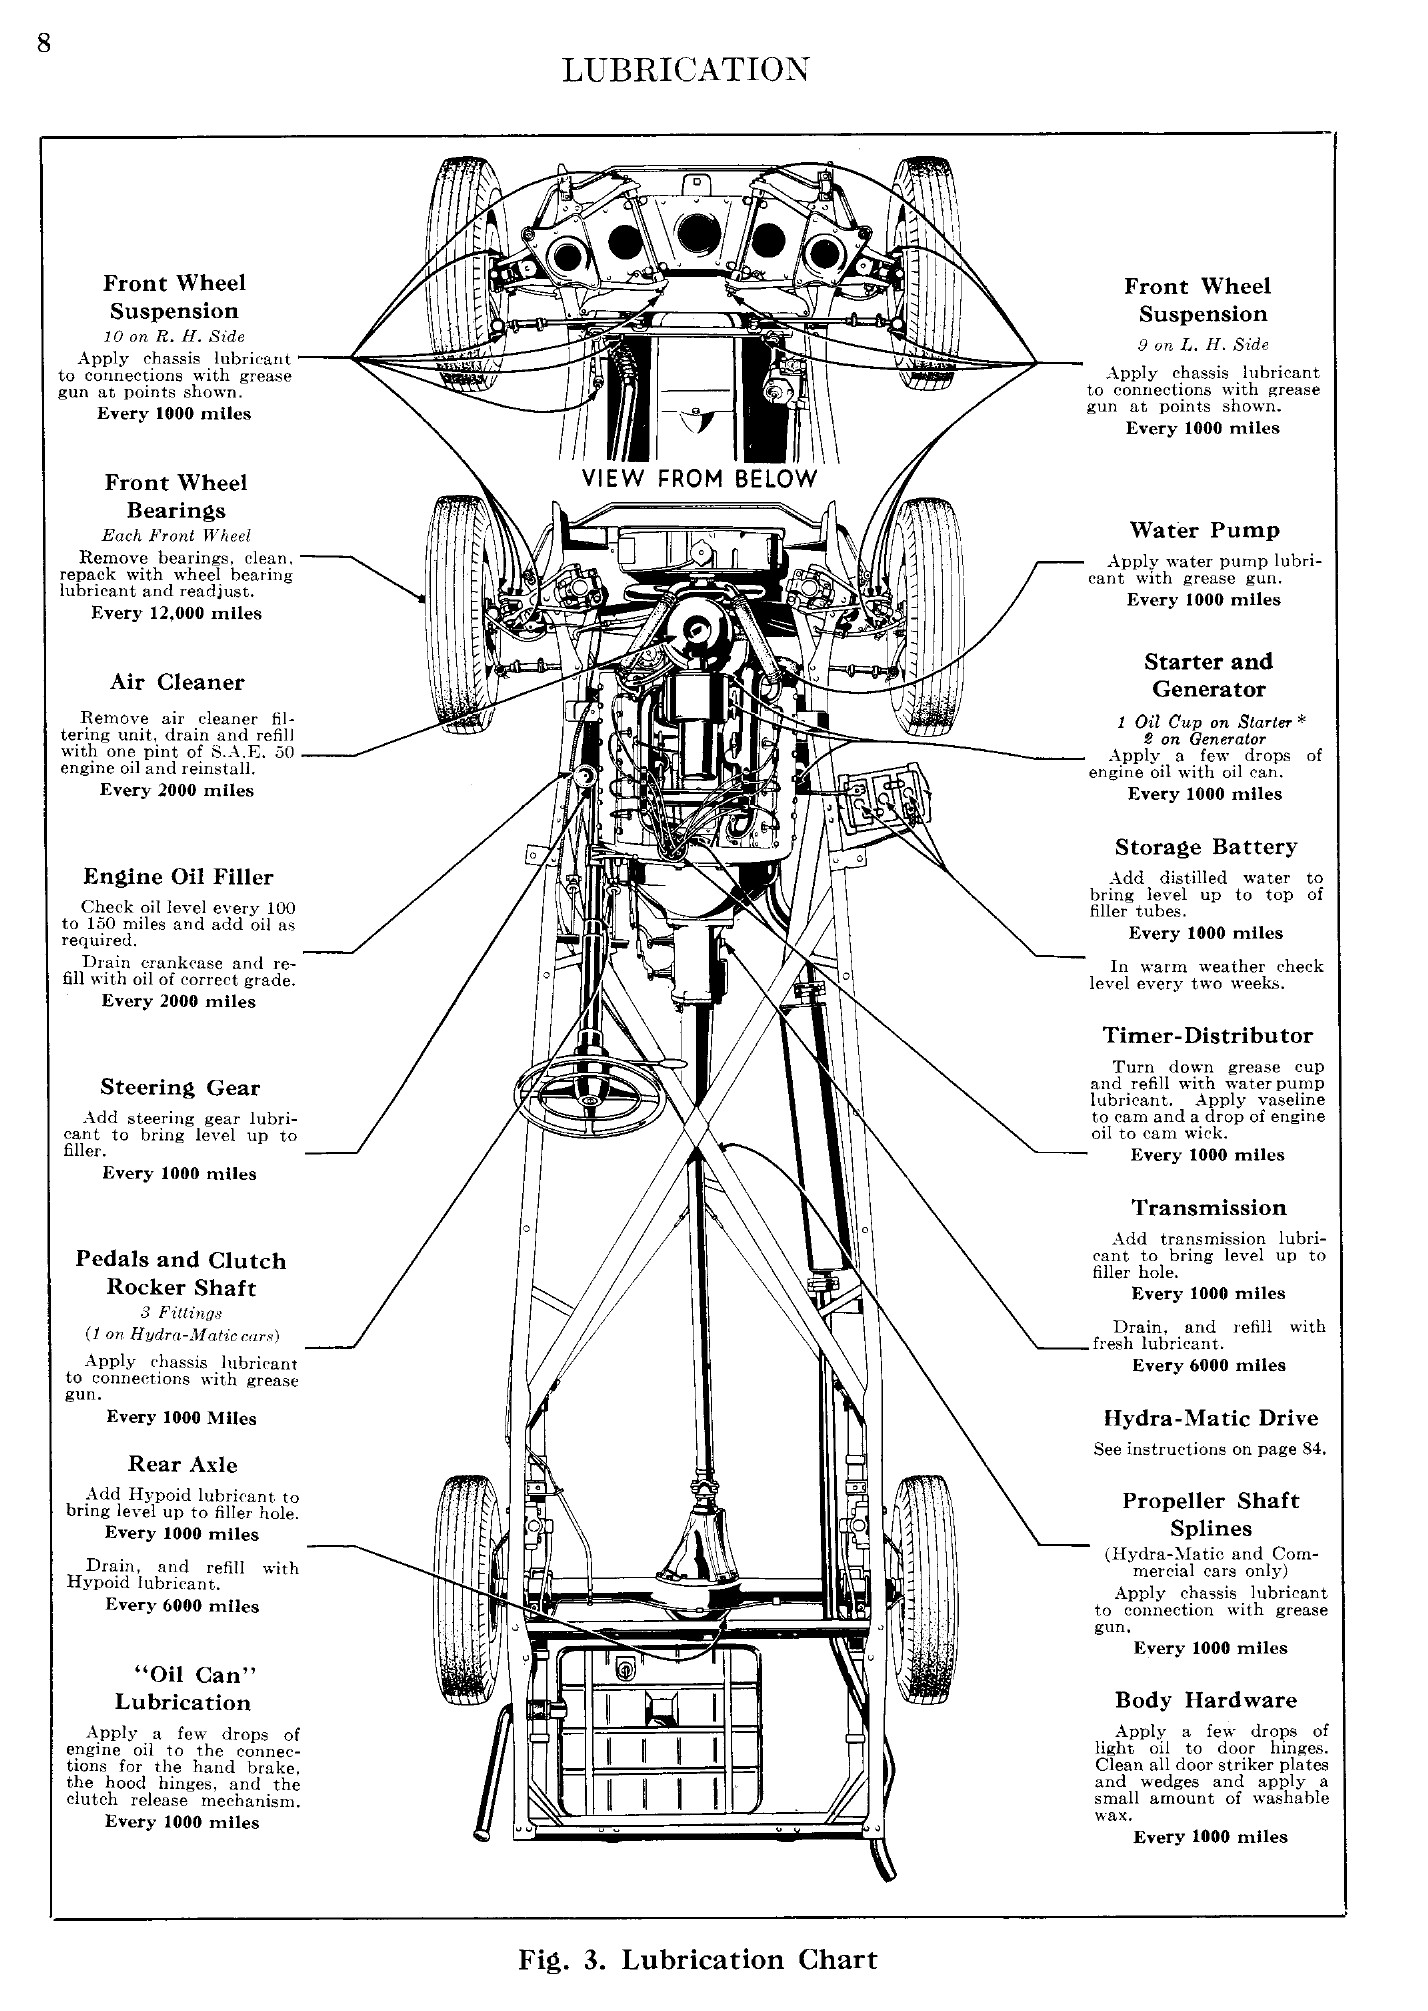 1947 Cadillac Shop Manual-Lubrication Page 3 of 6